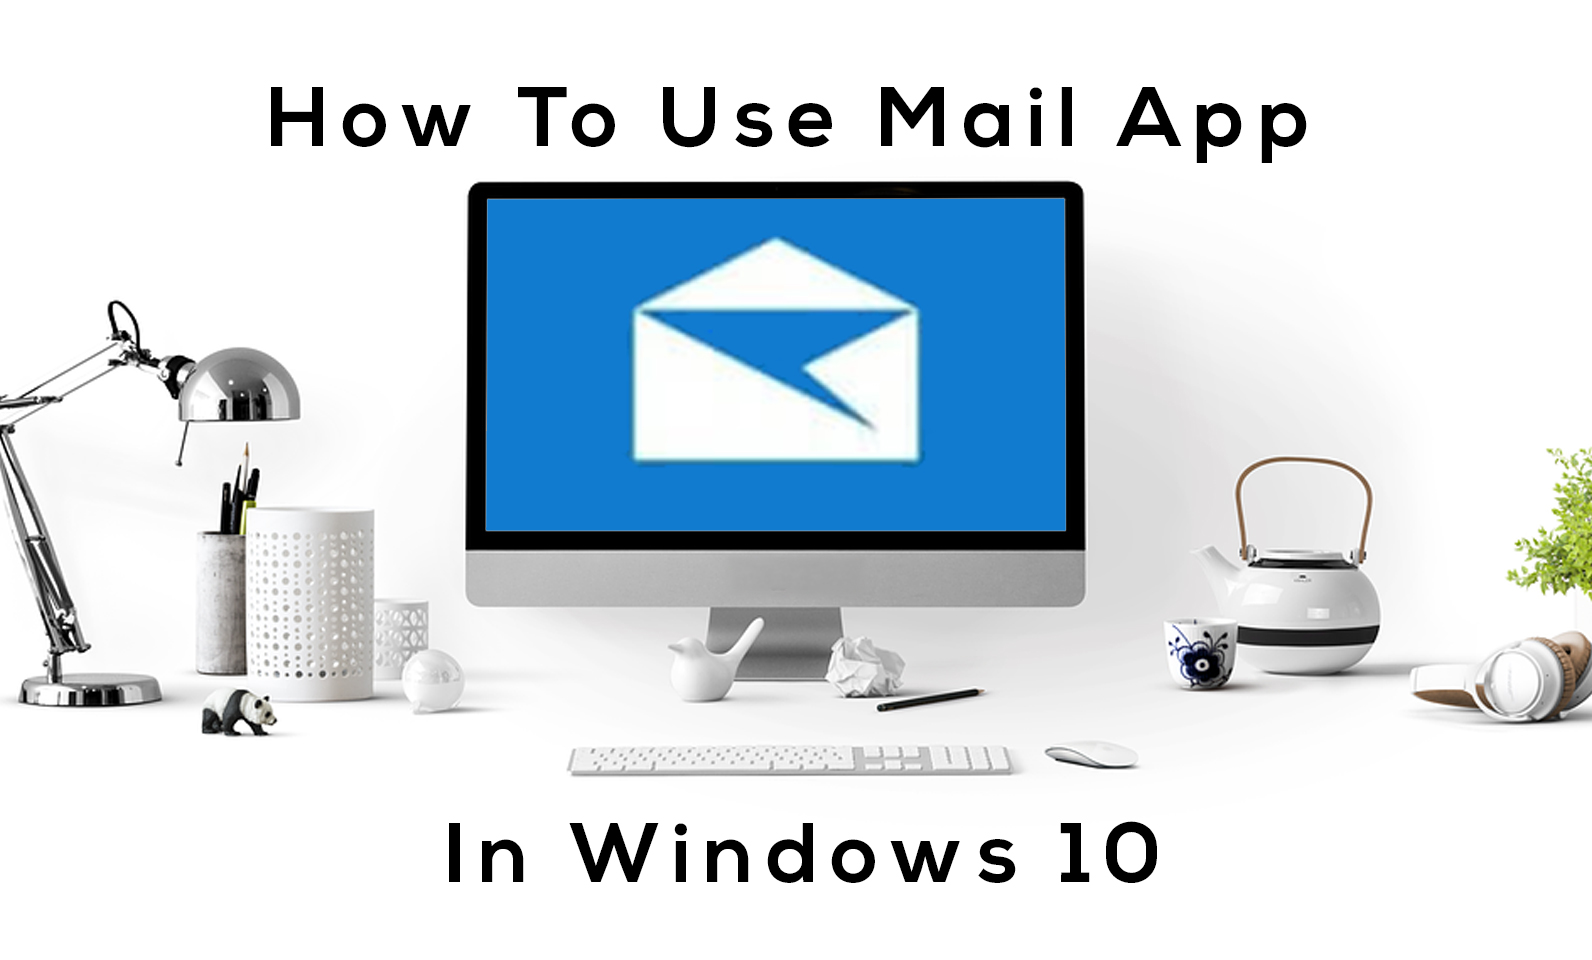 How To Use Mail App In Windows 10